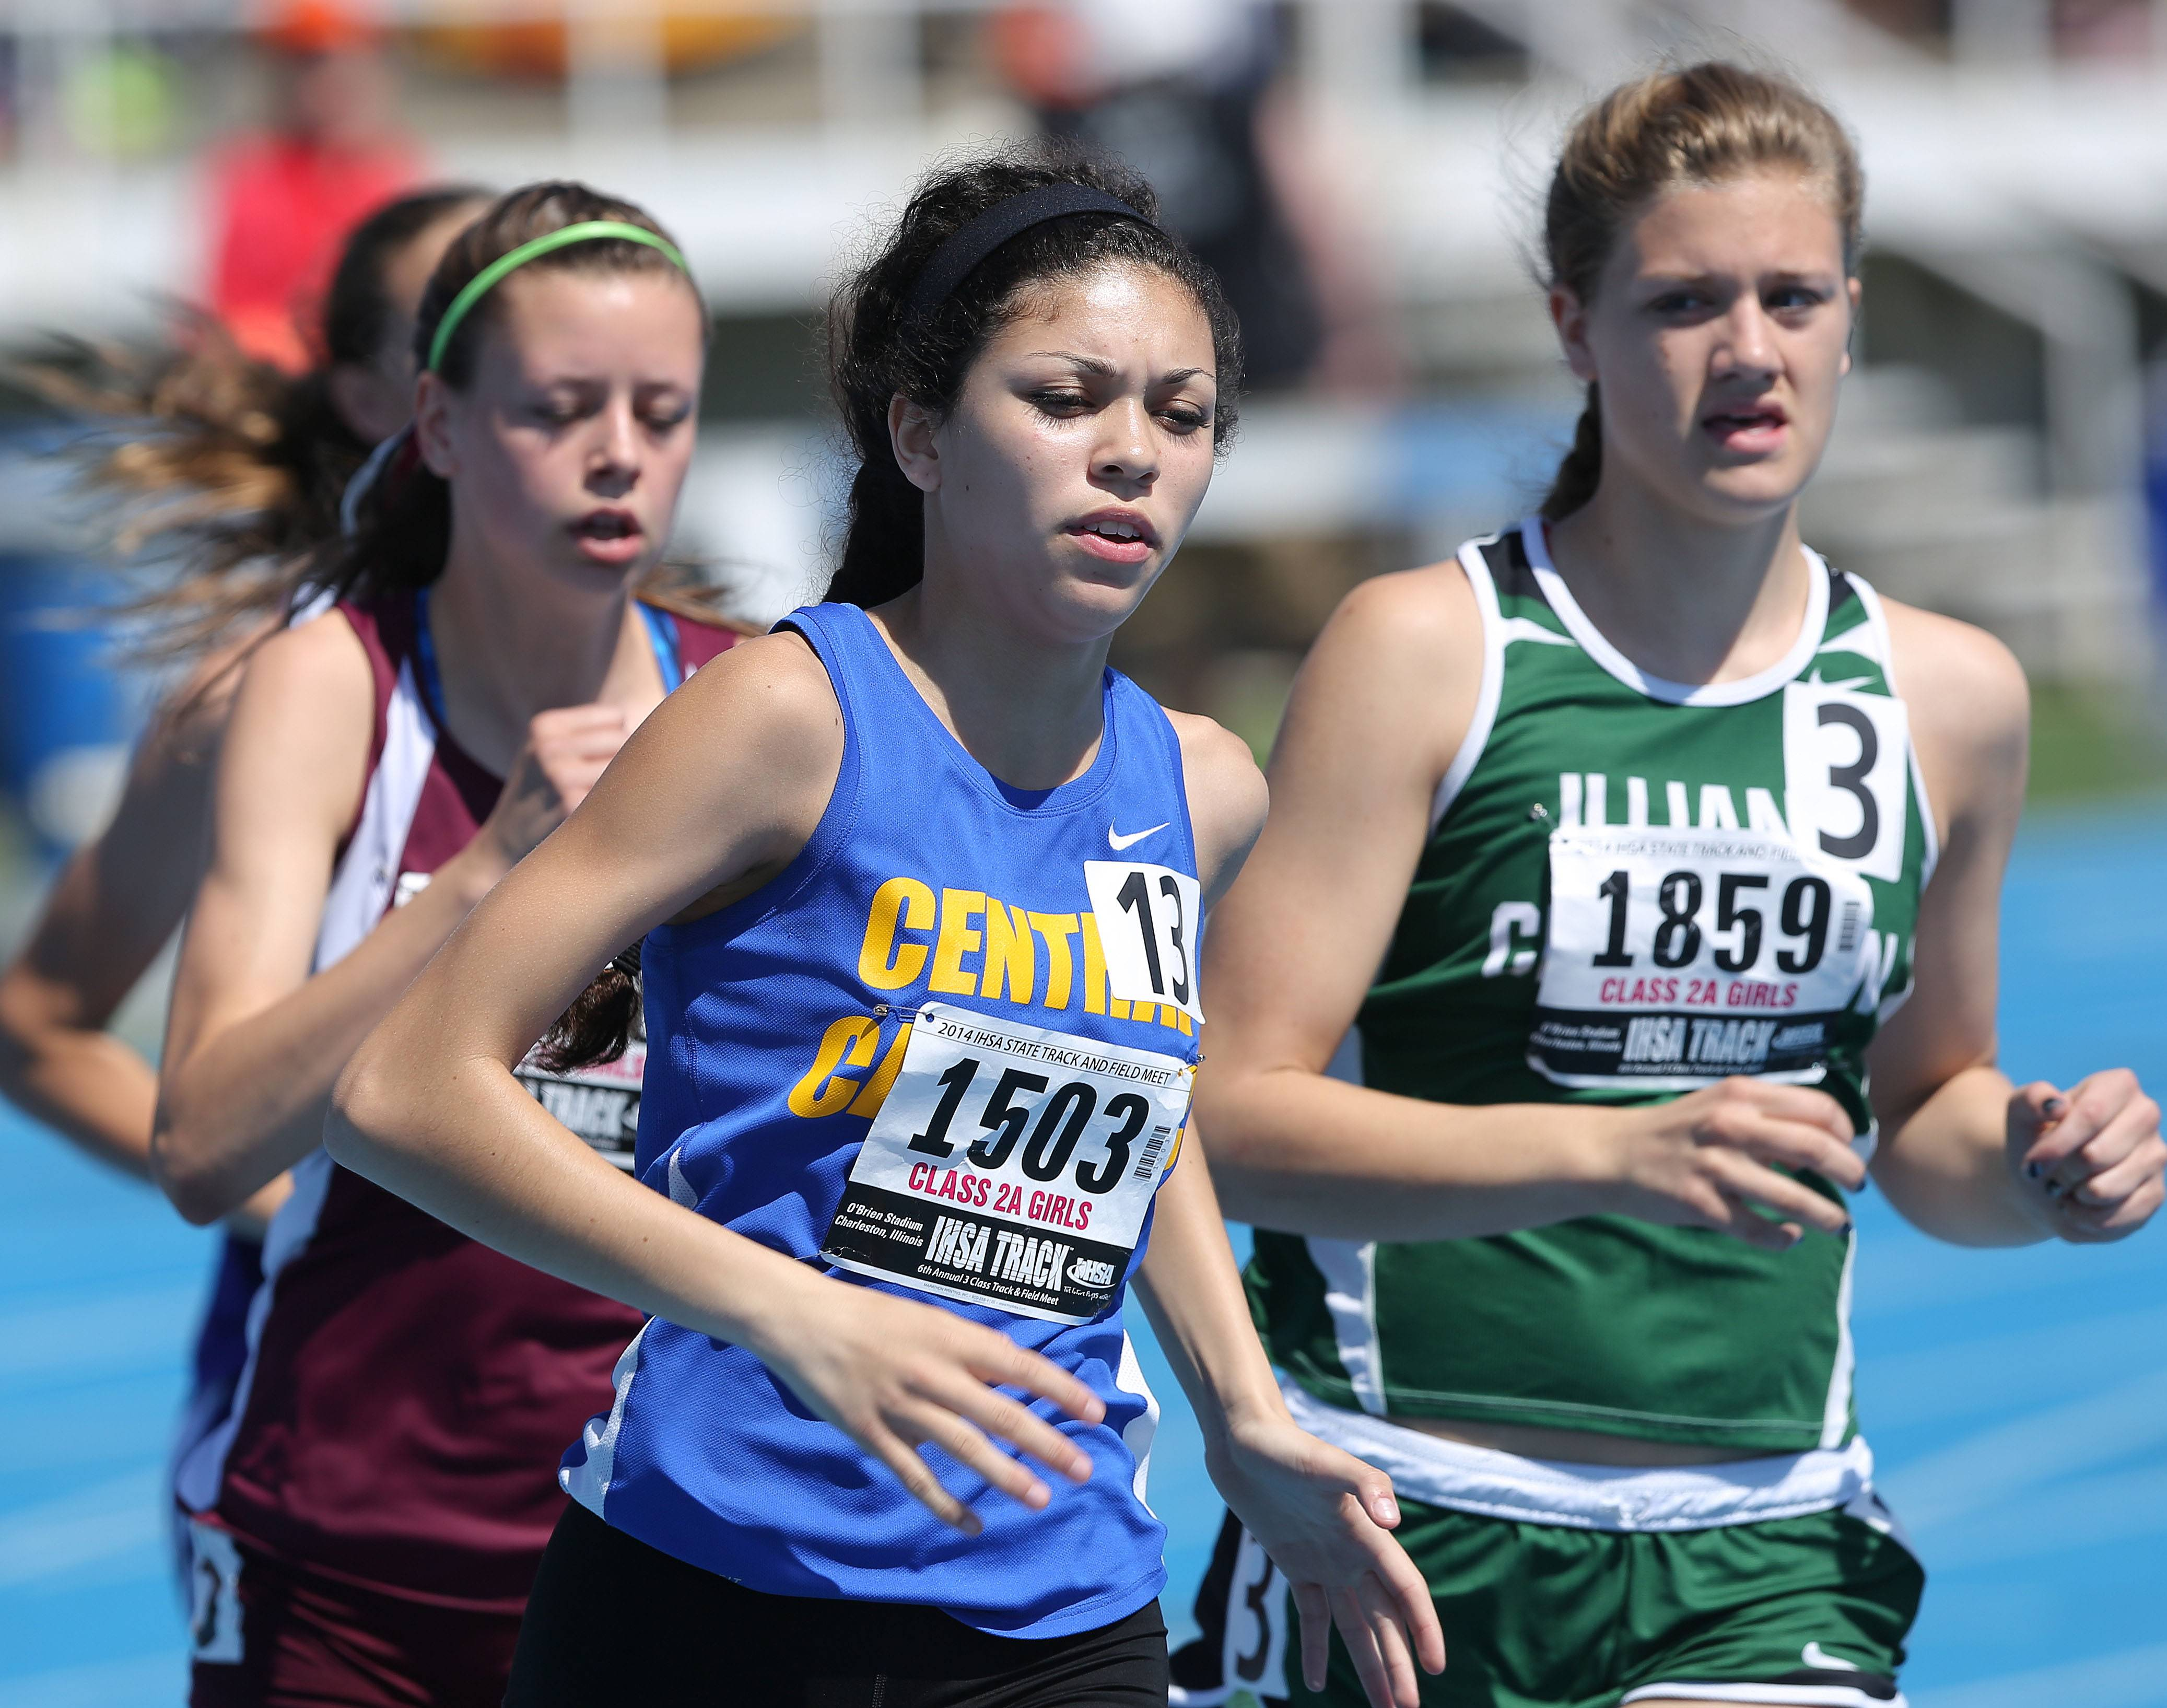 Aurora Central Catholic's Karina Liz runs in the 800-meter run during the prelims of the girls track and field state meet at Eastern Illinois University in Charleston Friday.